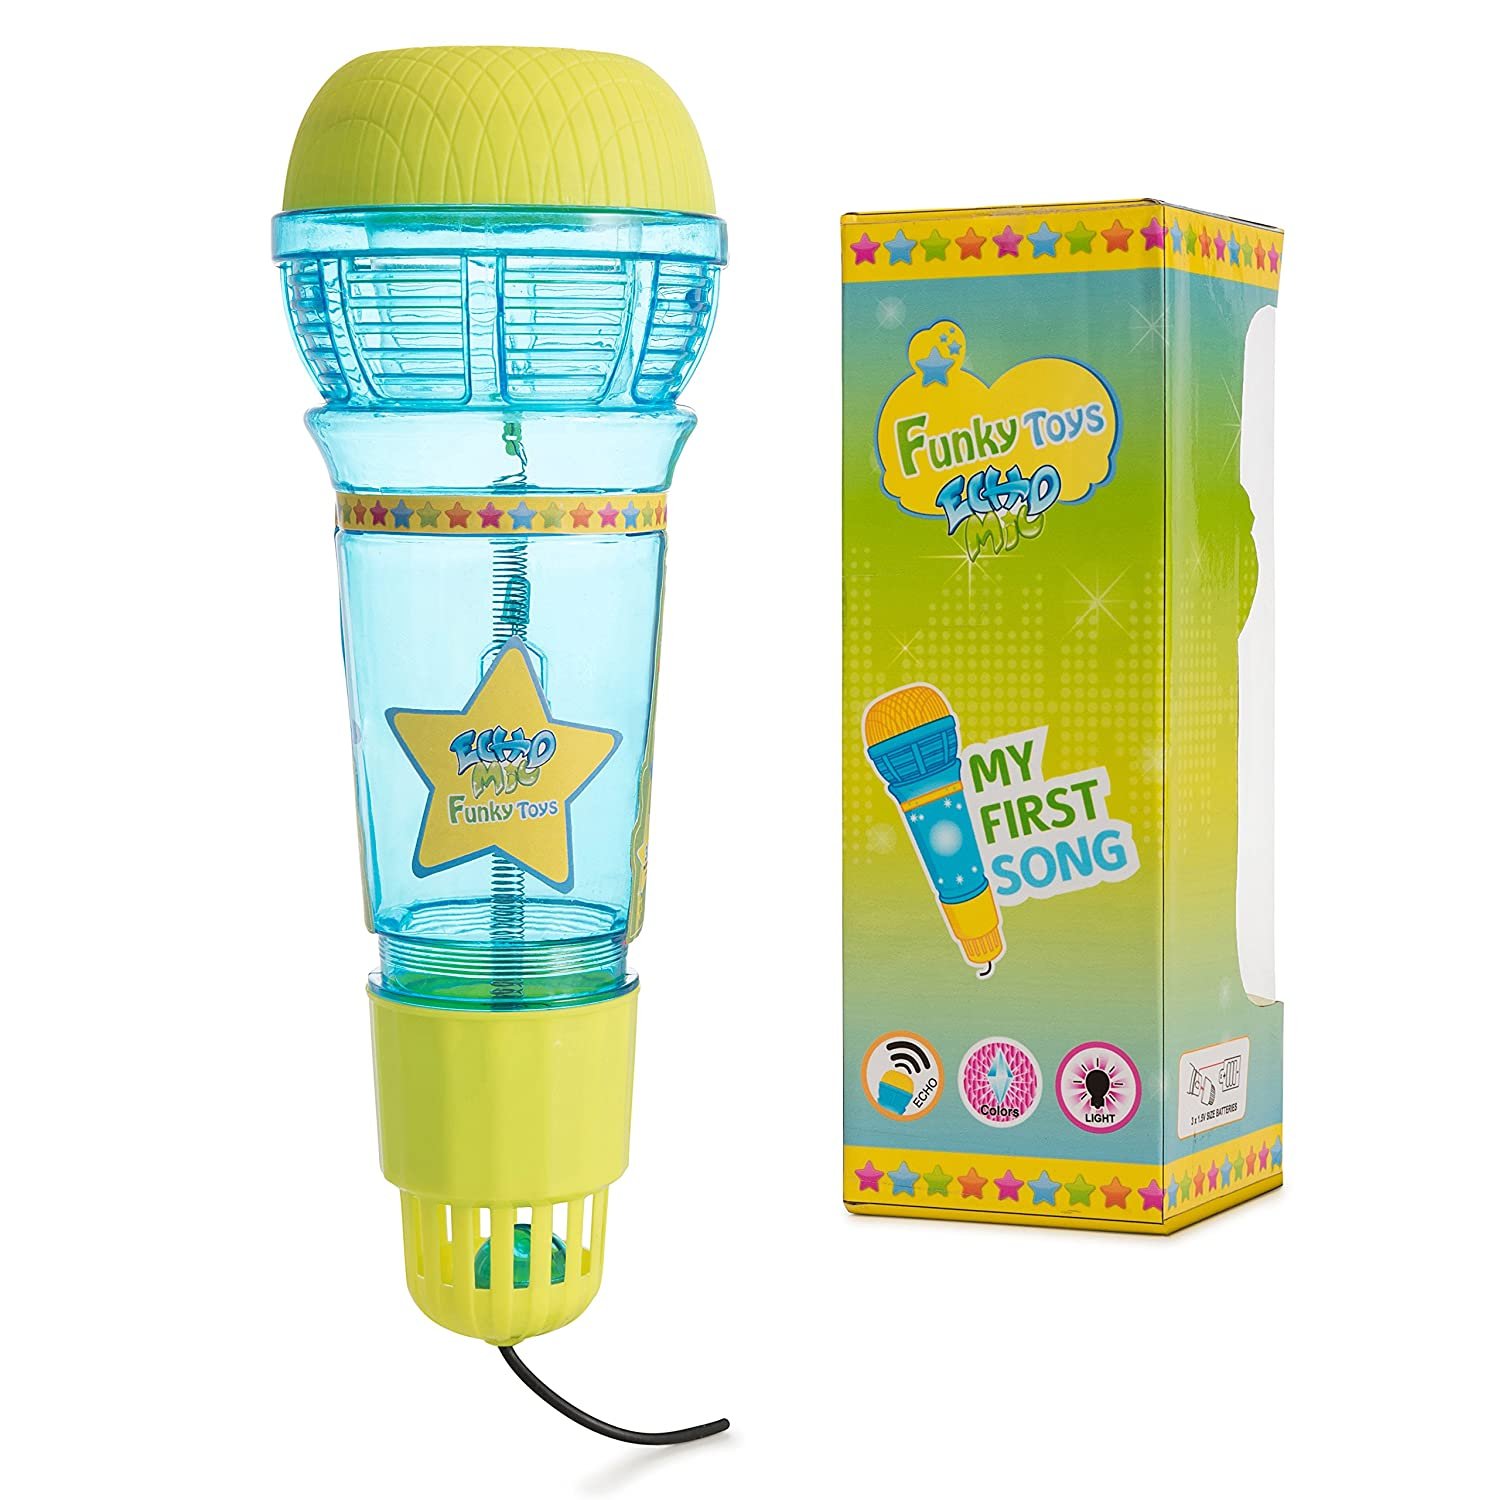 Funky Toys Echo Mic For Kids & Toddlers By Magic Microphone Toy With Multicolored Flashing Light & Fun Rattle - Translucent Blue & Yellow - Great Gift For Boys & Girls Who Love Singing & Music